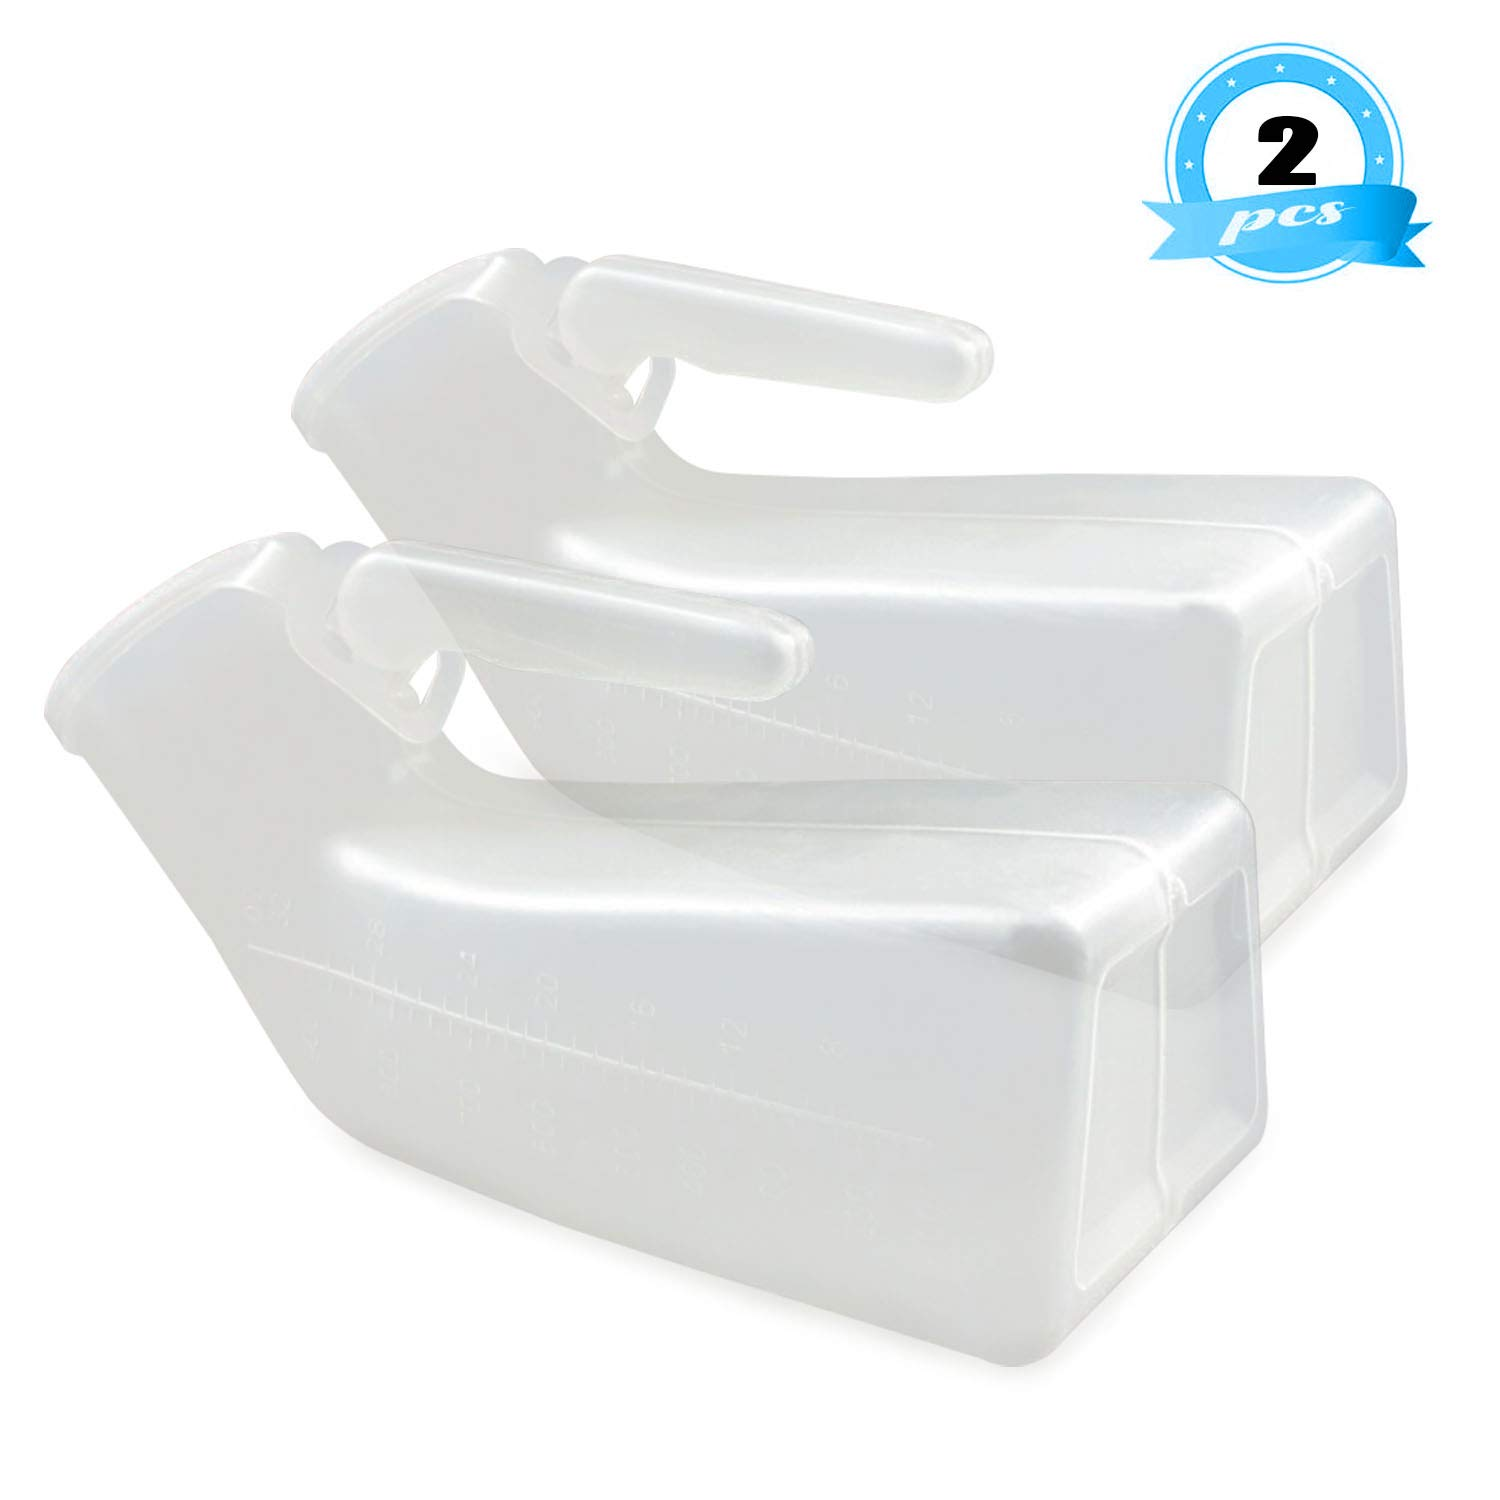 Urinals for Men, Plastic Pee Bottle, Mens Bedpan Bottle with a Lid, Male Portable Pee Bottles (2 Pack) by Campeel